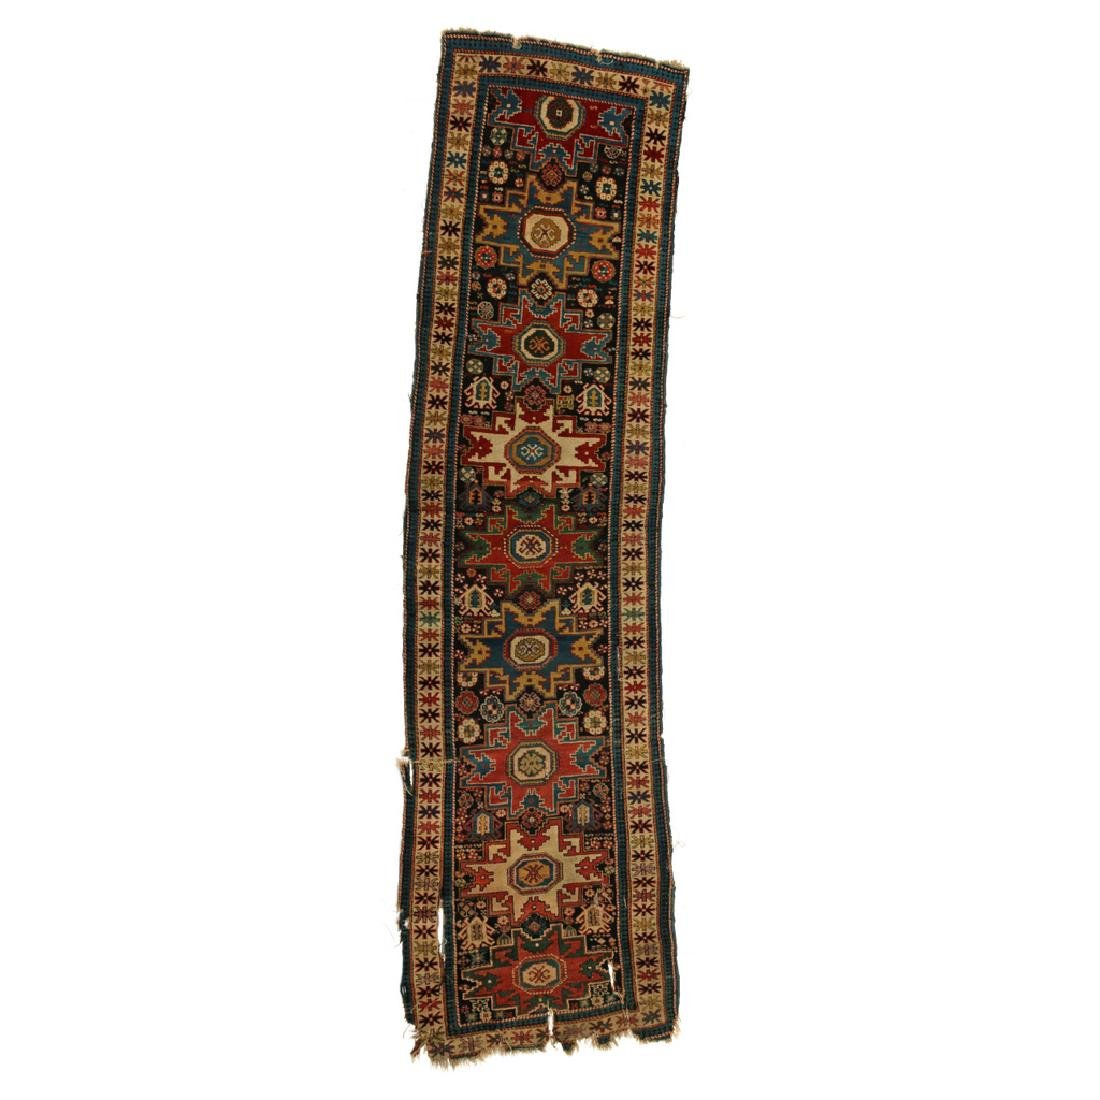 LESGHI-STAR LONG RUG - 2